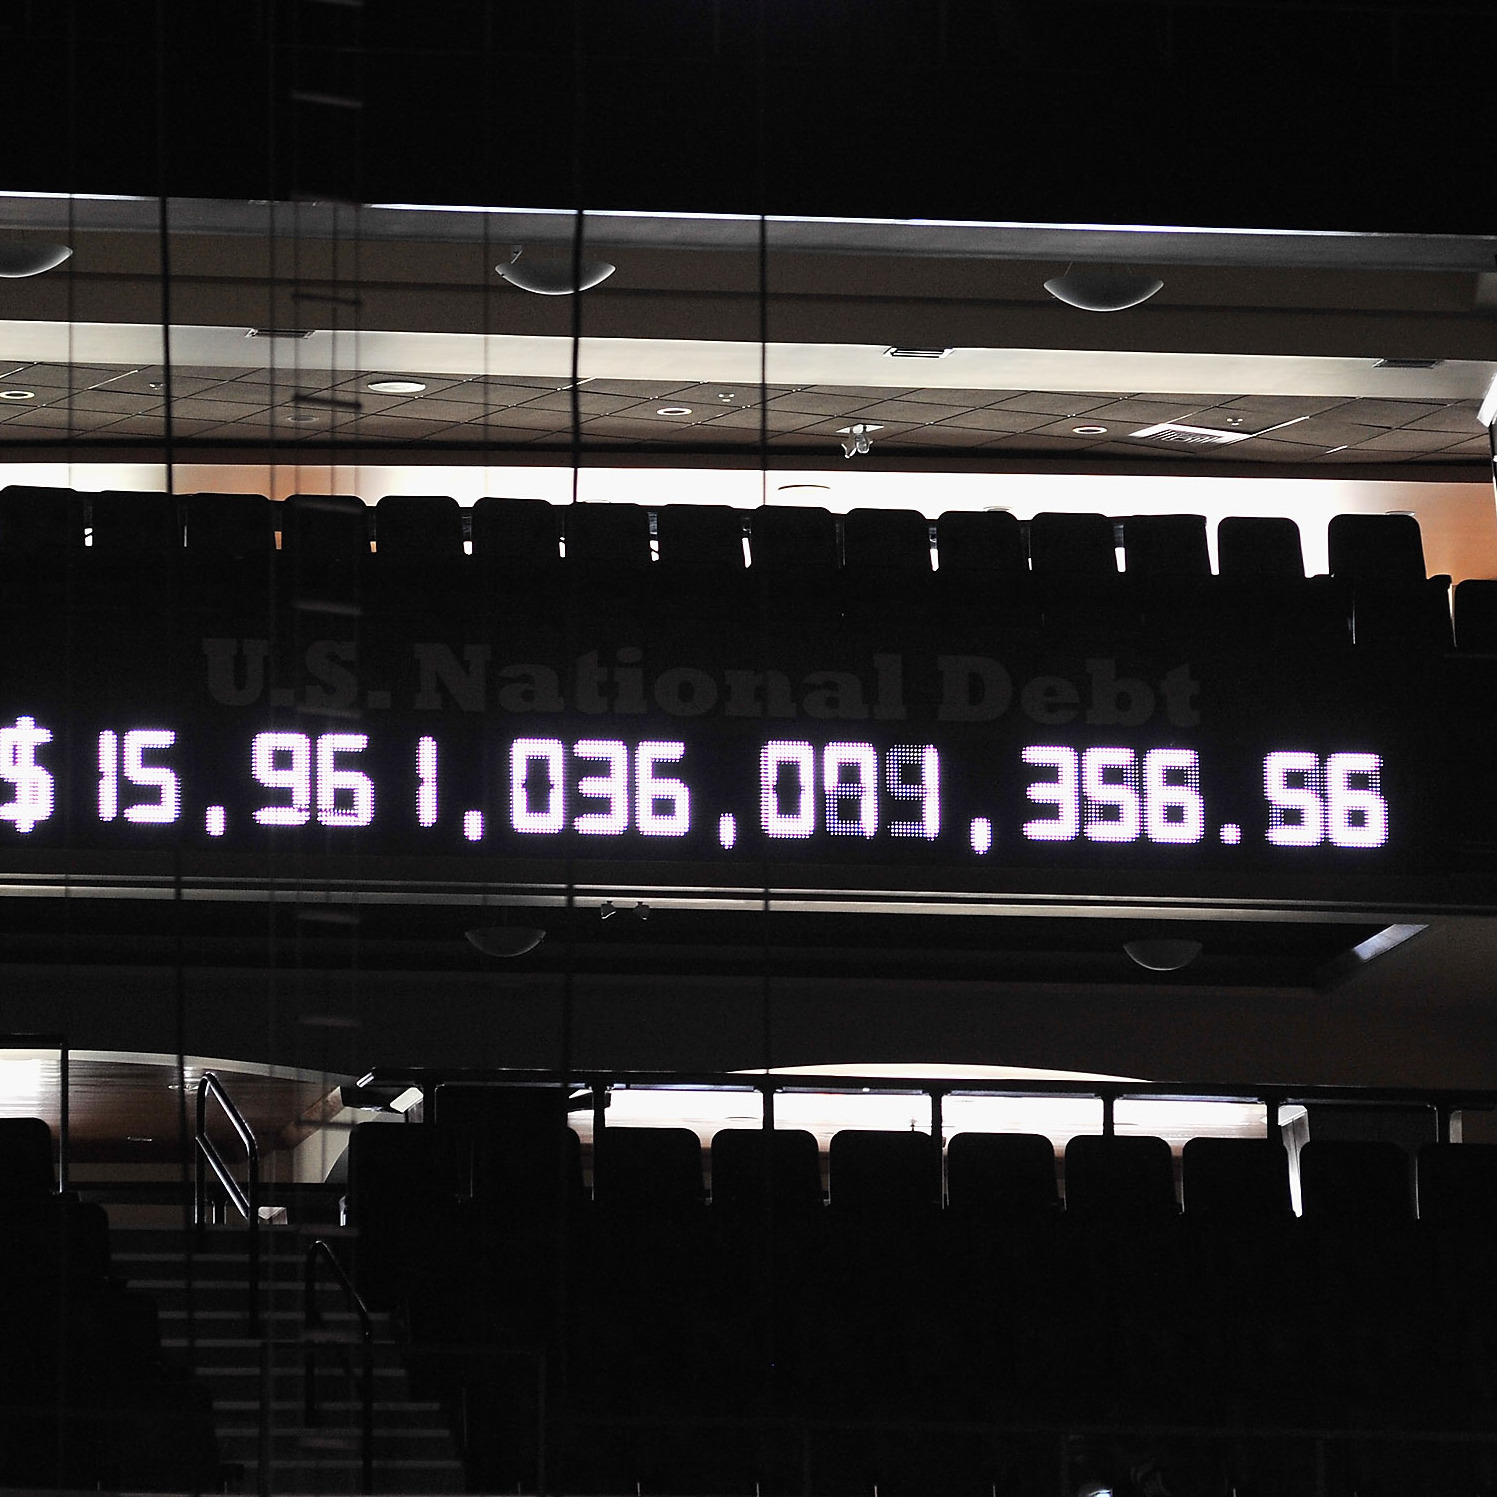 The debt clock is ticking inside the Tampa Bay Times Forum, where the 2012 Republican National Convention is being held.